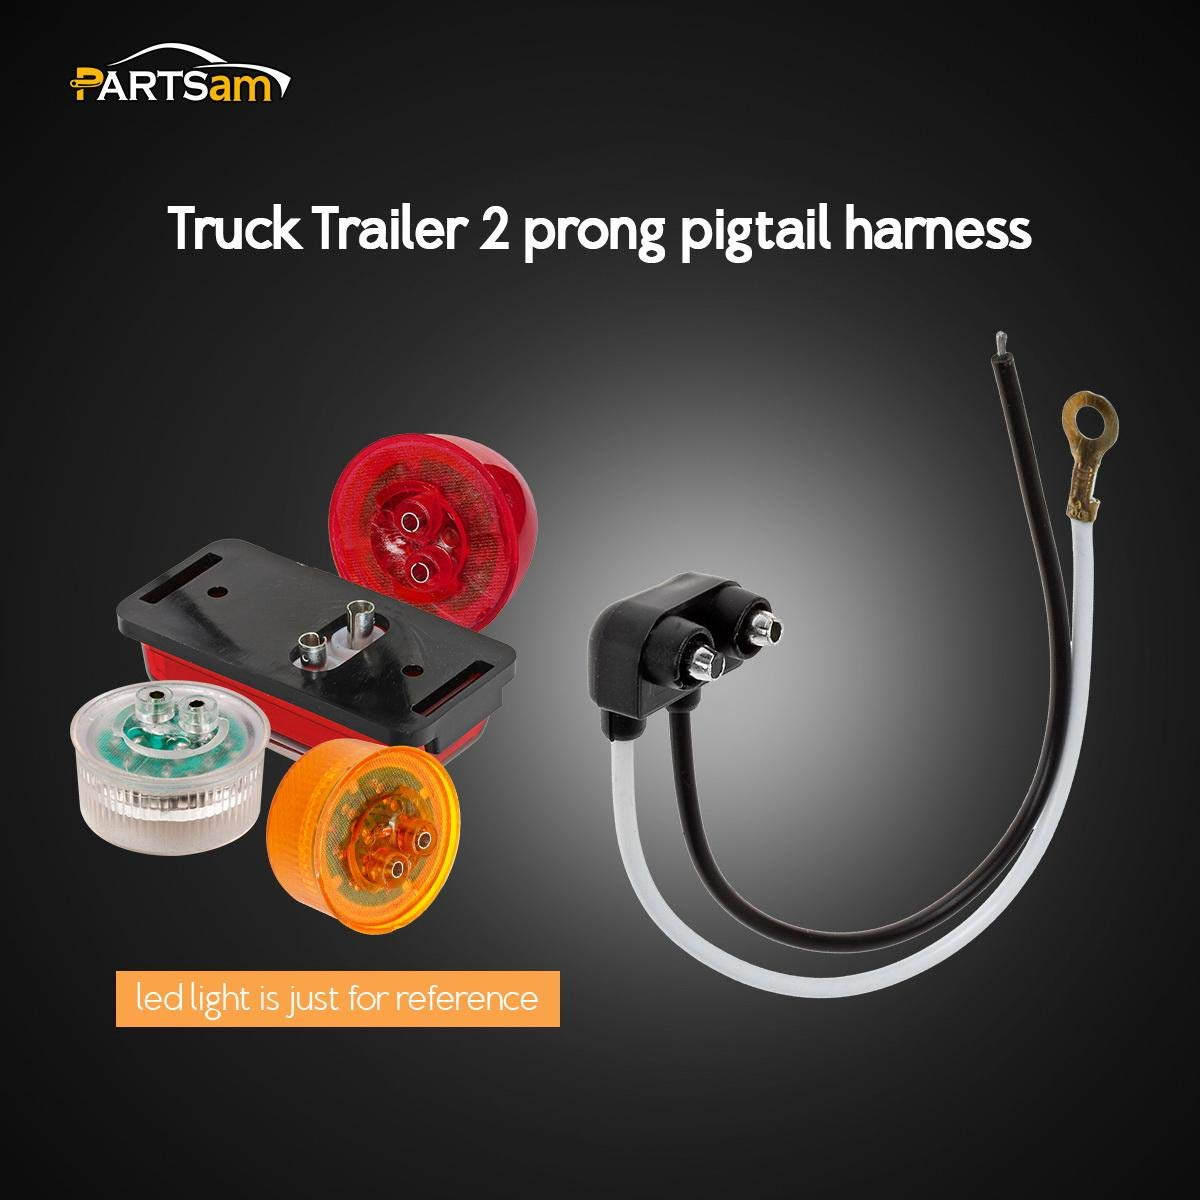 Partsam 2 Prong Pigtail Wire Plug for Truck Trailer Side Marker Clearance Lights Qty 5